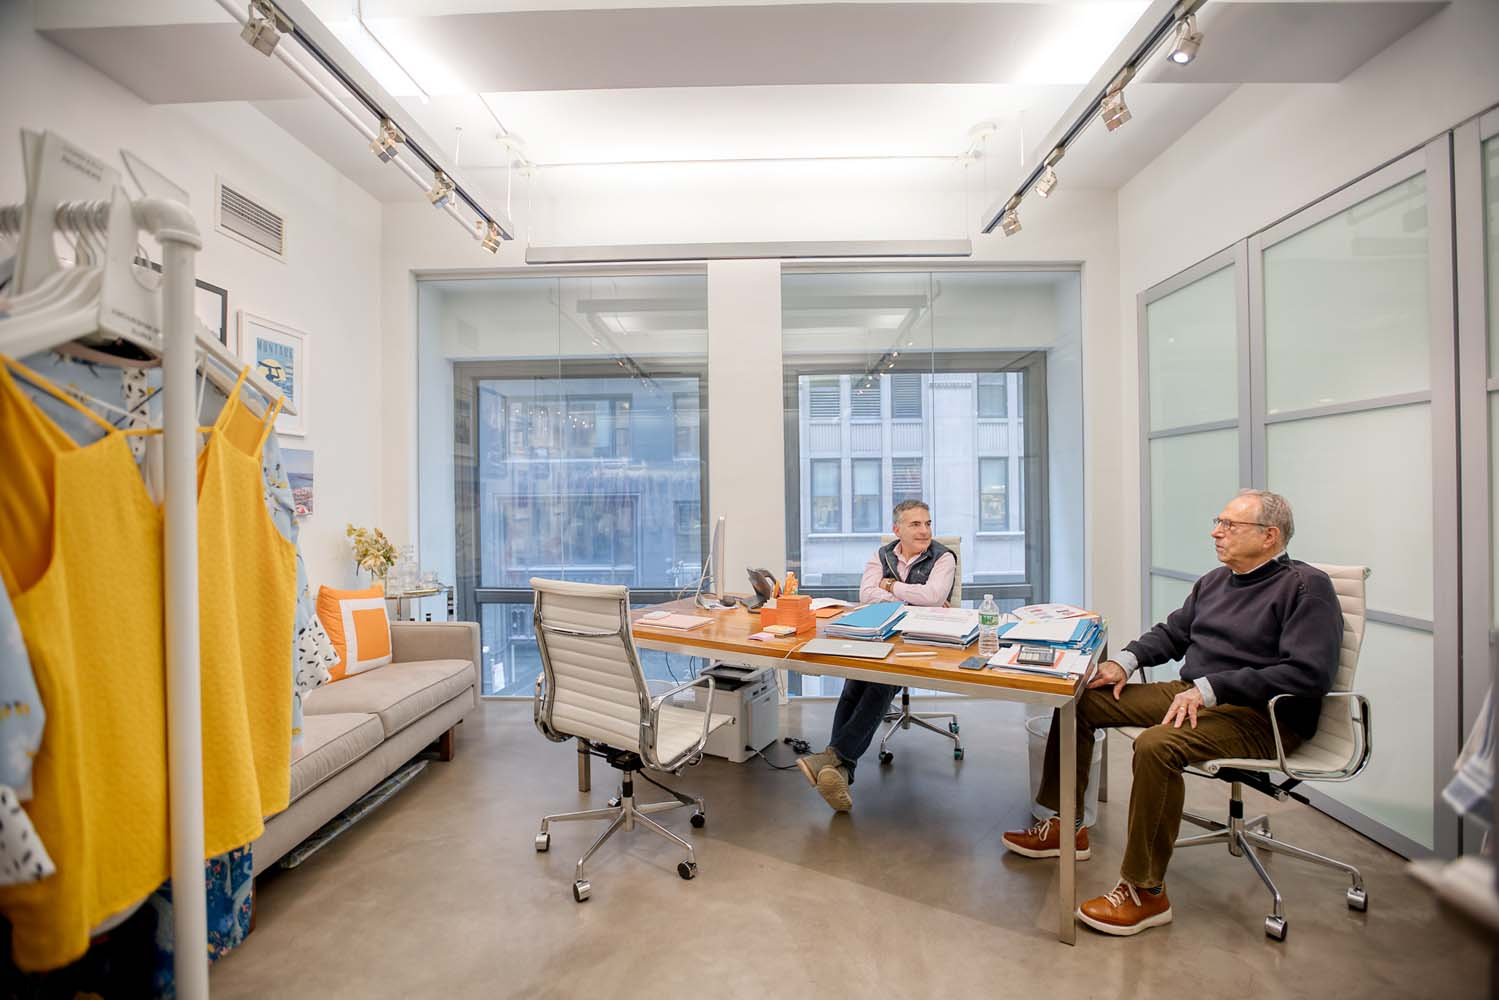 Private Offices - Space 530 is a modern, full-service environment for innovative companies seeking creative office space. Offering a range of flexible options, members enjoy a place to work, network and build their business.